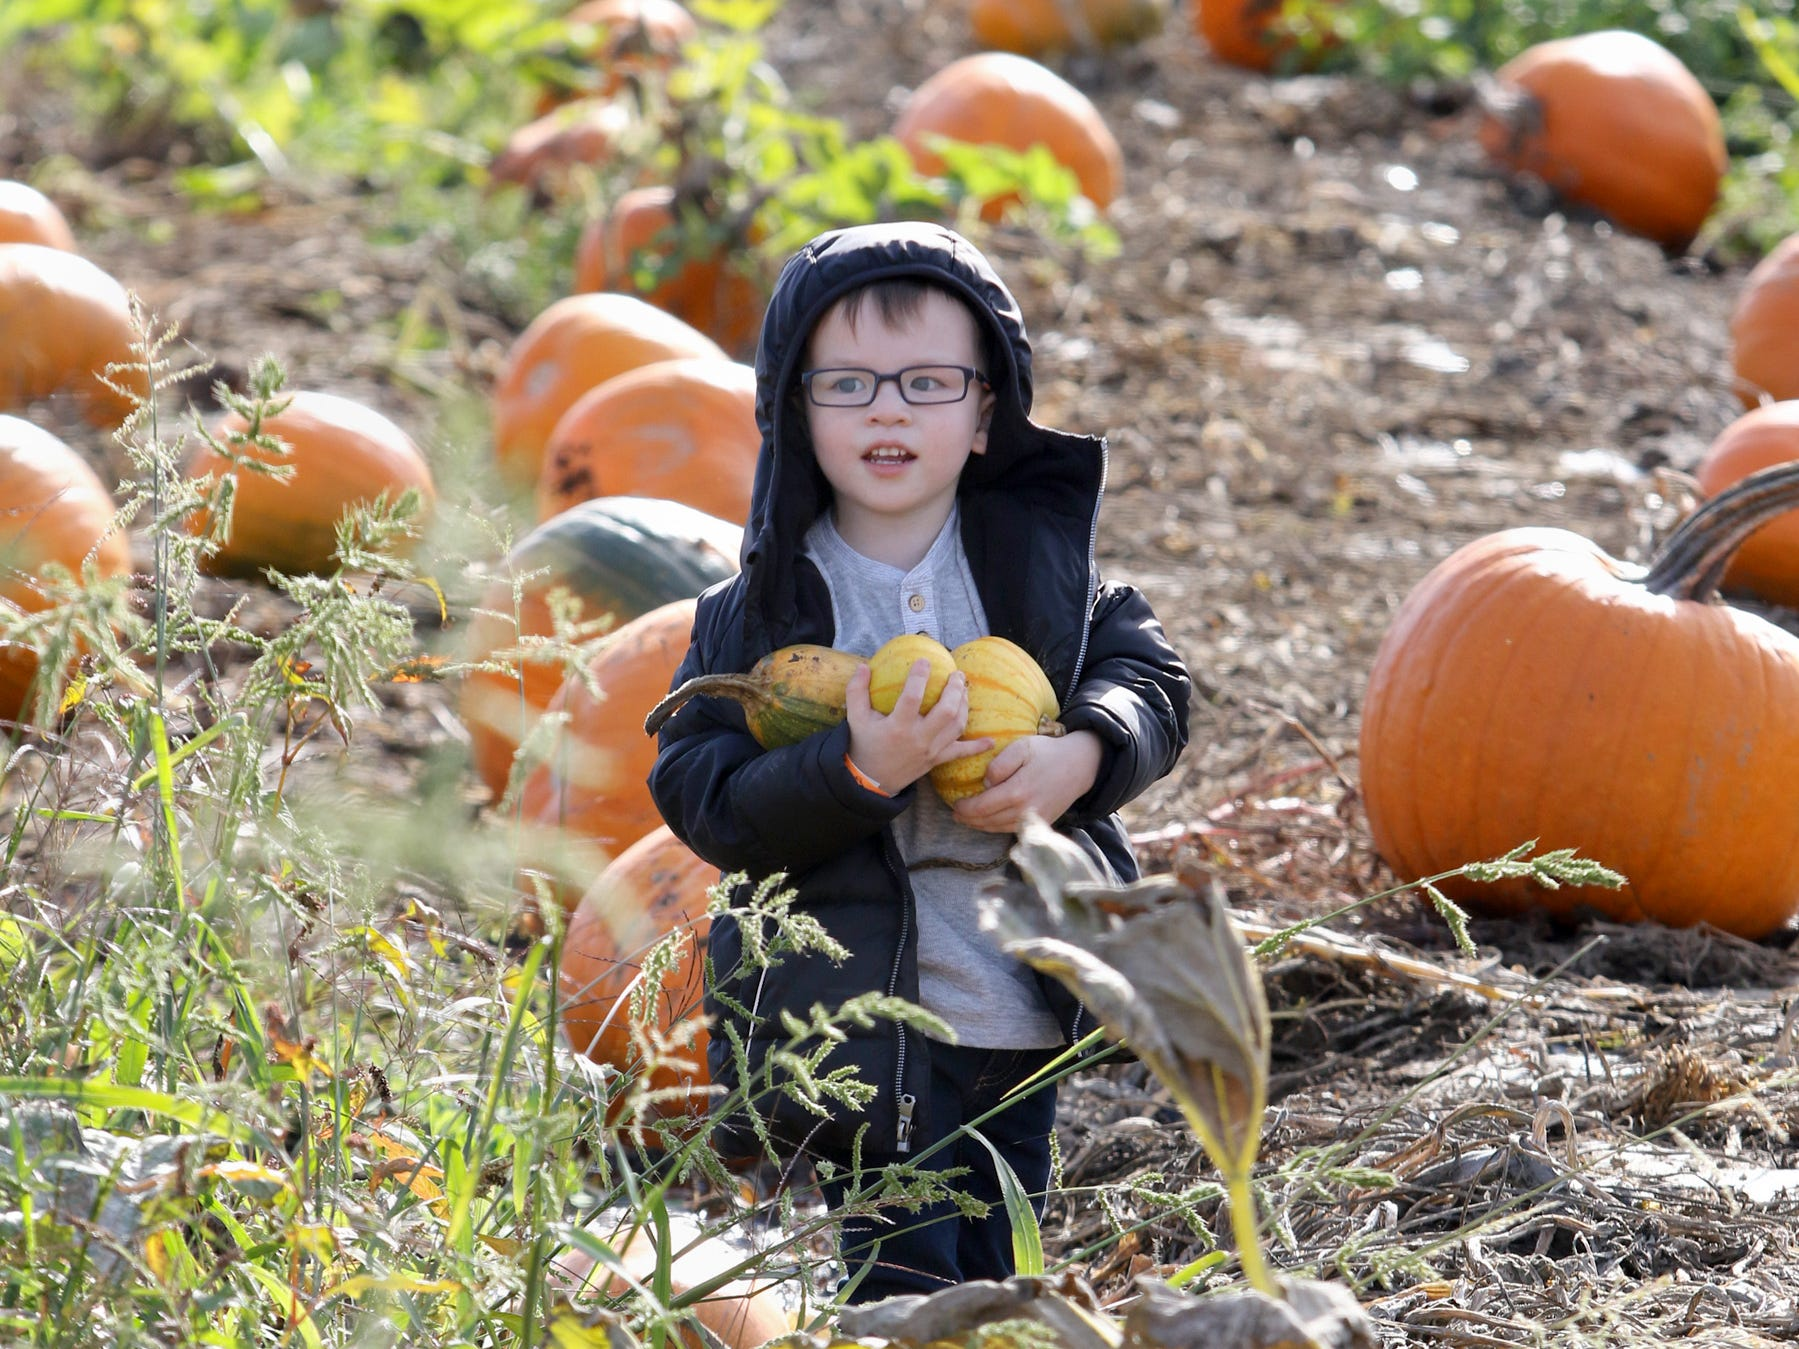 After wandering through the pumpkin patch at Hunter Farms, Sam Turgano, 4, of Port Orchard, thought three pumpkins were better than one.